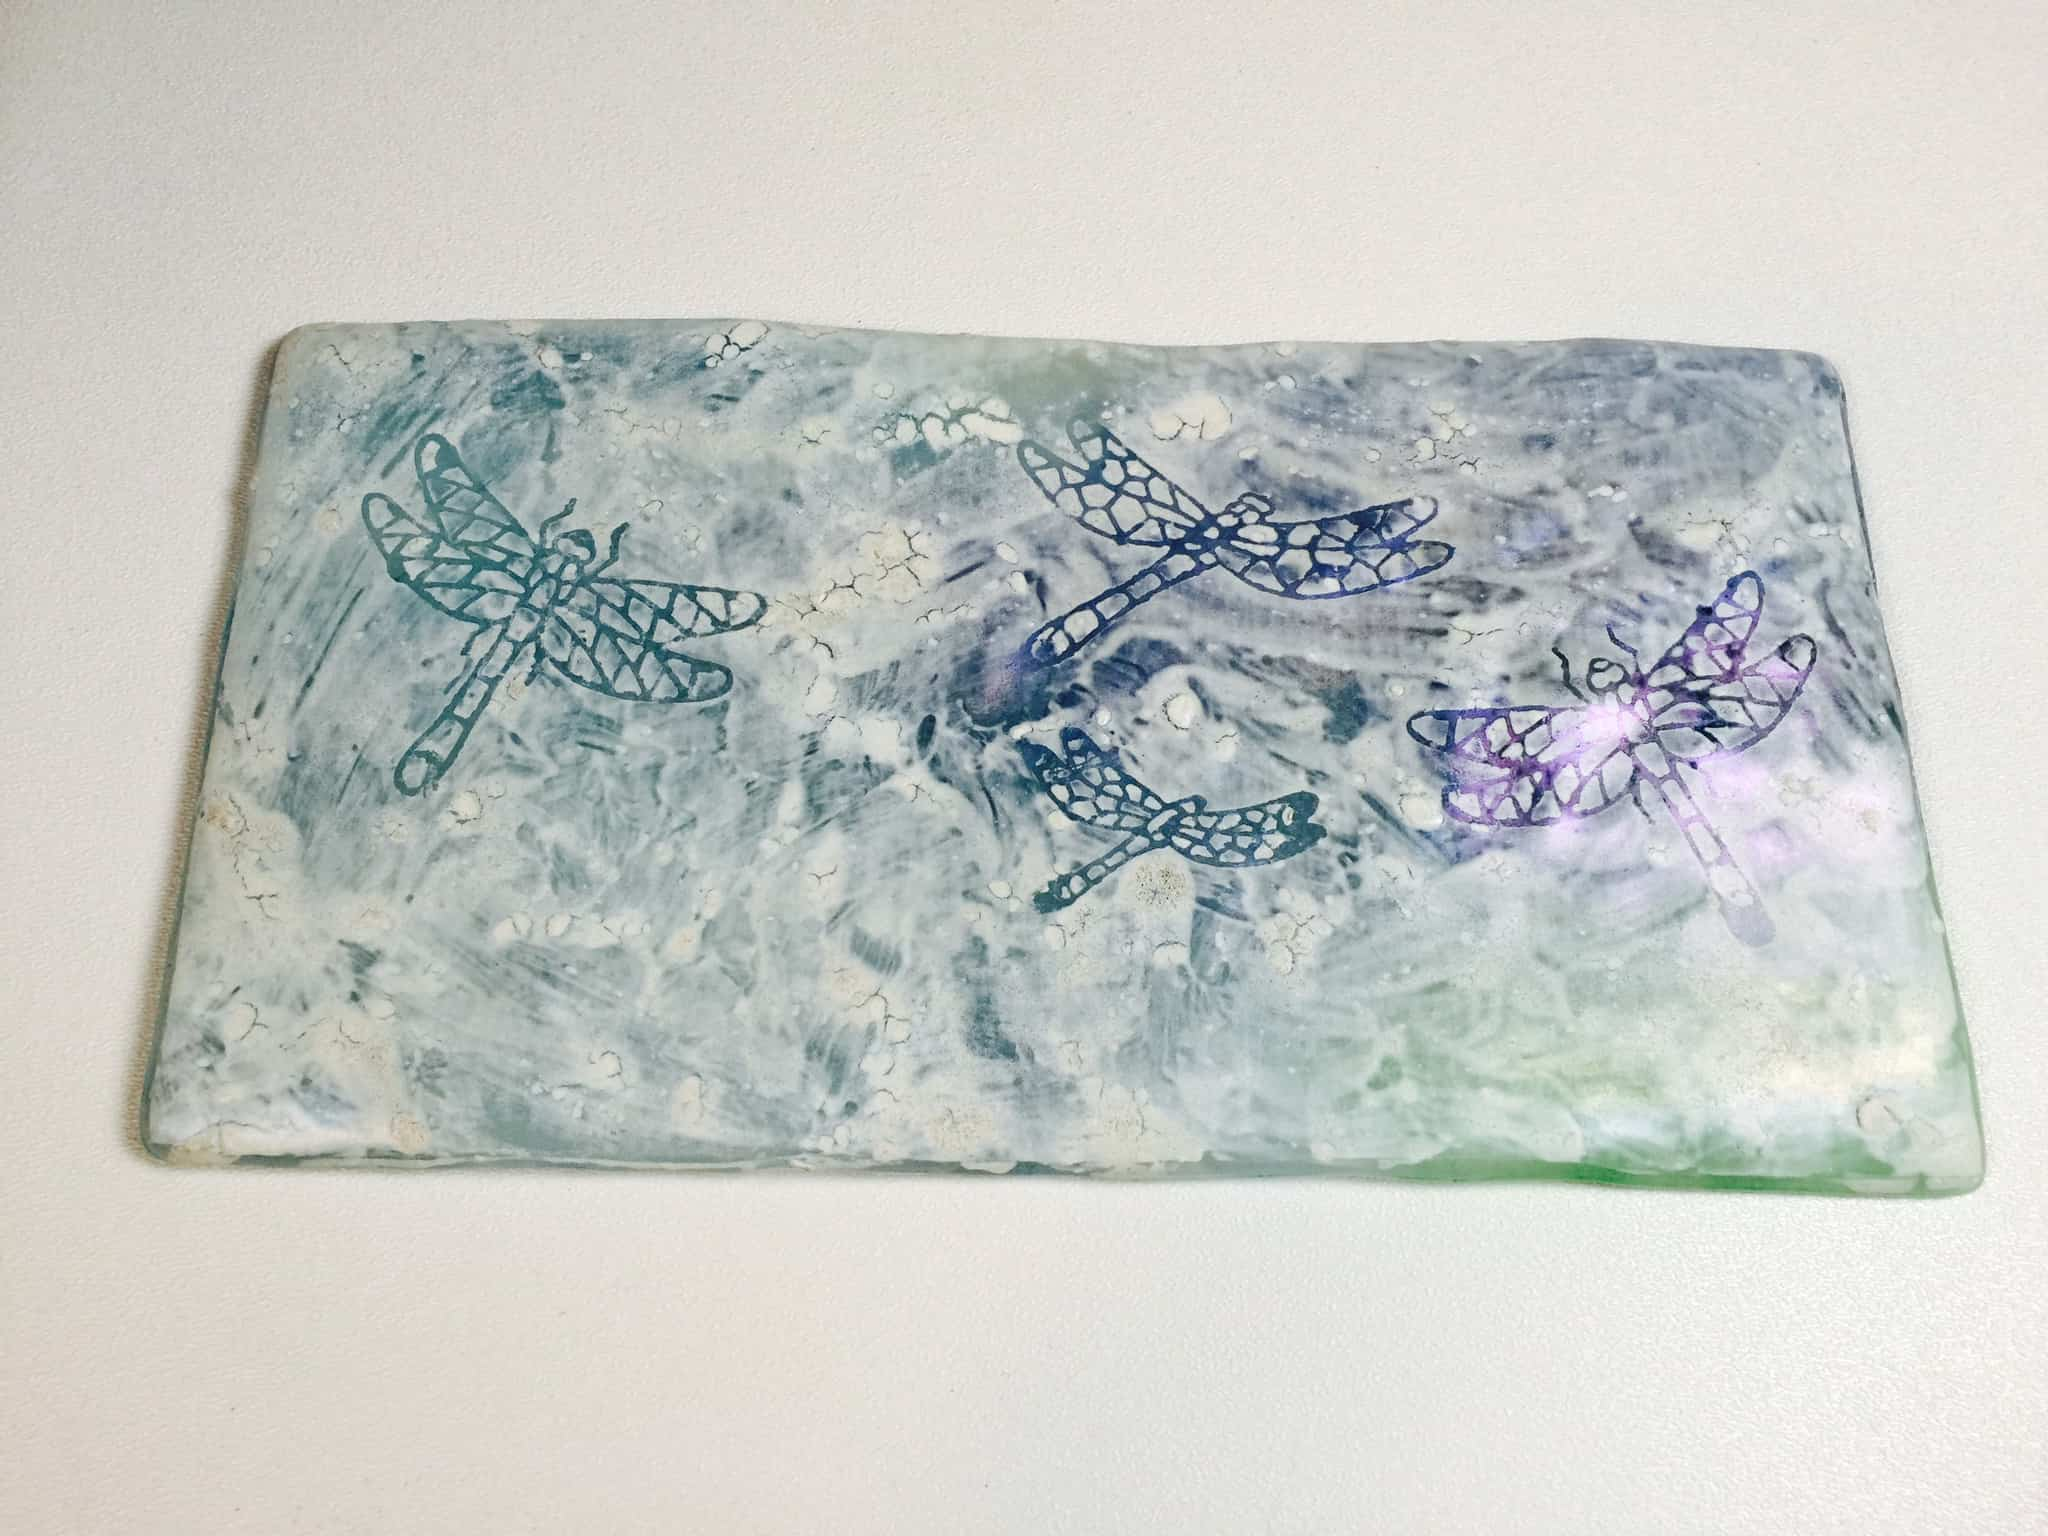 Fused Glass Mud experiment